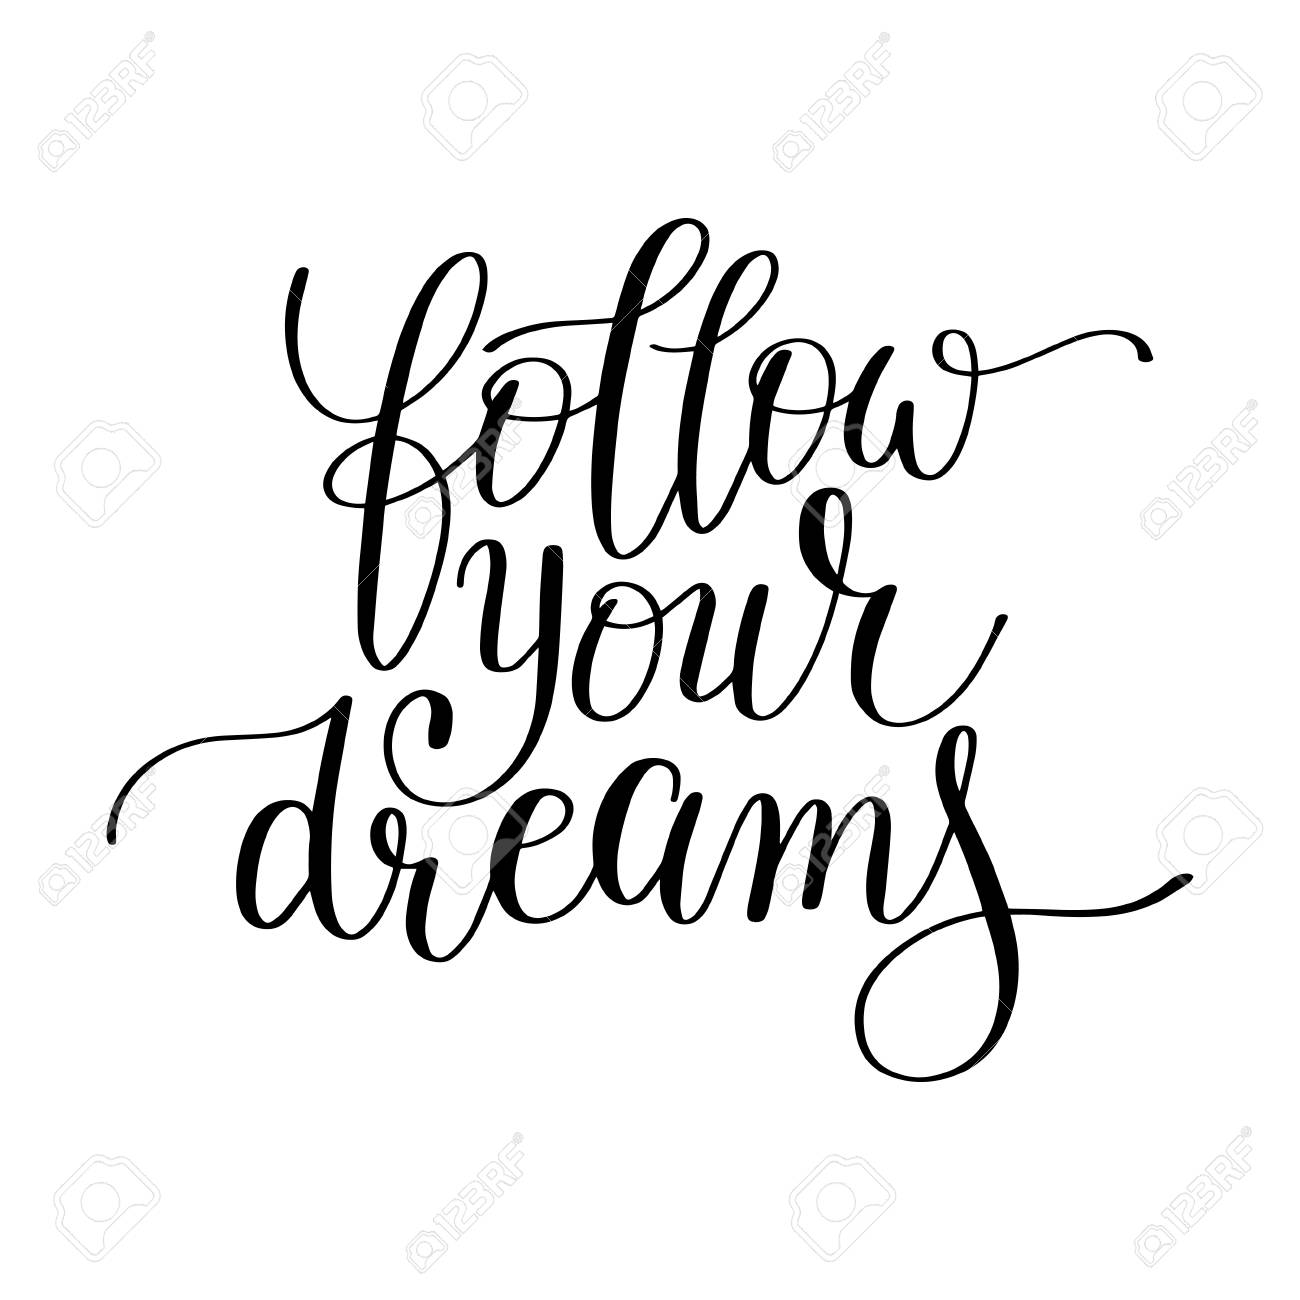 follow your dreams handwritten calligraphy lettering quote to design greeting card poster banner  sc 1 st  123RF.com & Follow Your Dreams Handwritten Calligraphy Lettering Quote To ...